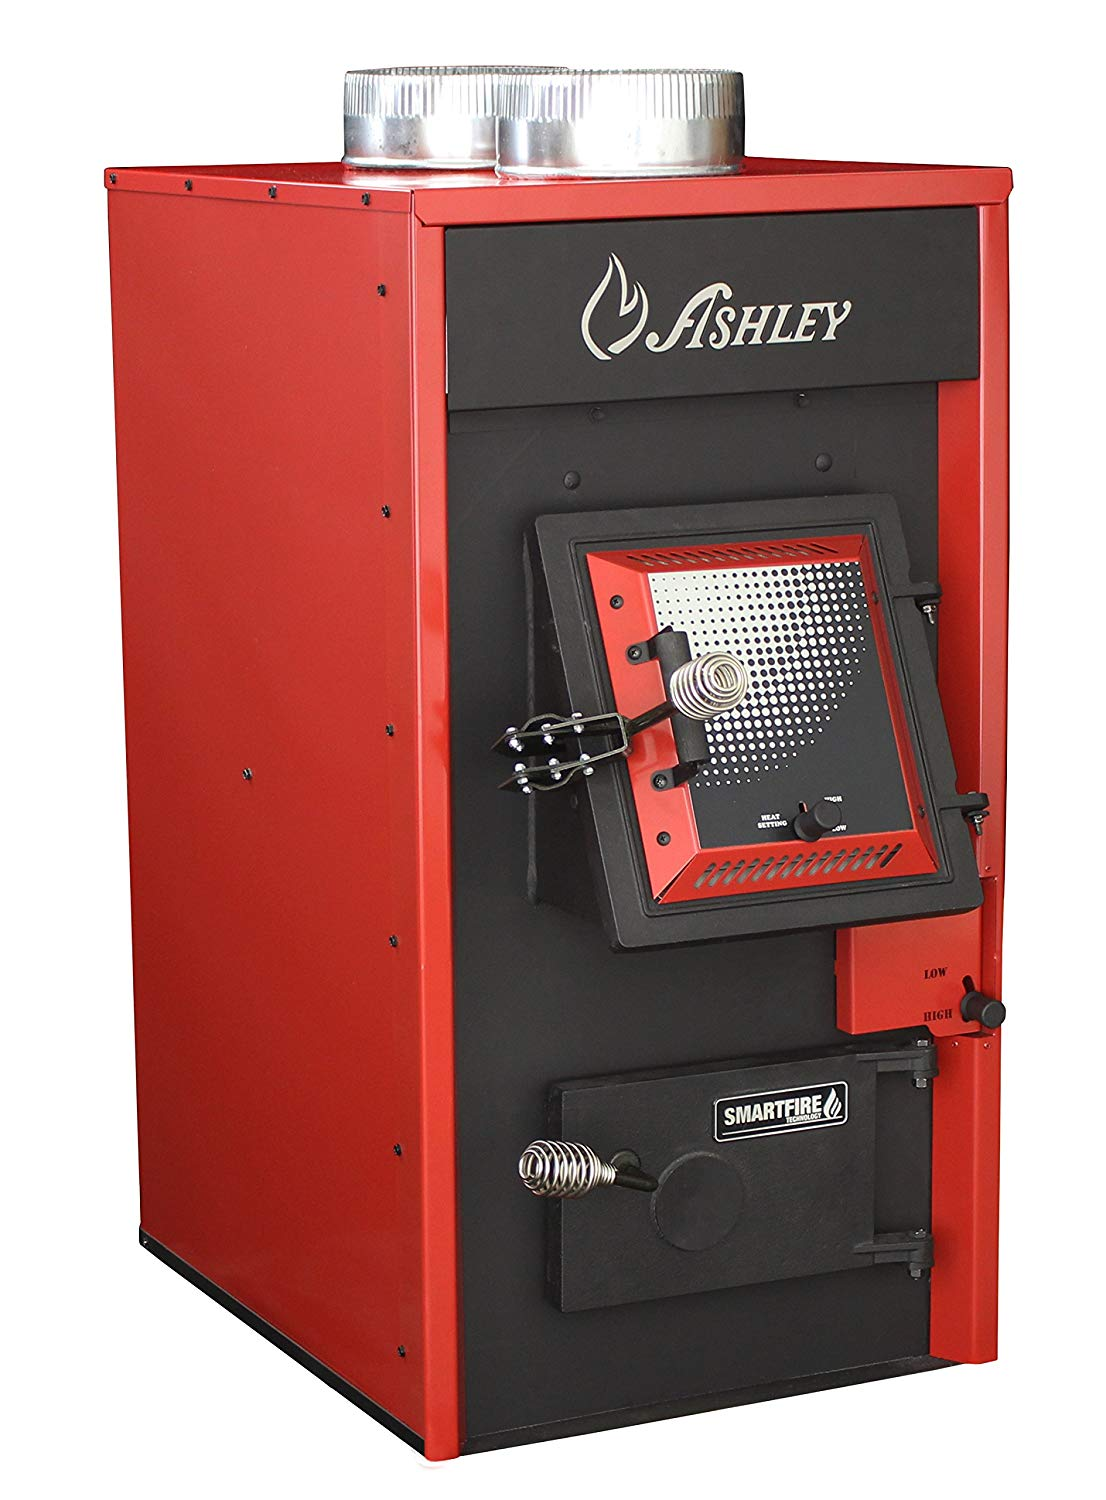 Ashley 1330E Hotblast Wood Burning Warm Air Furnace